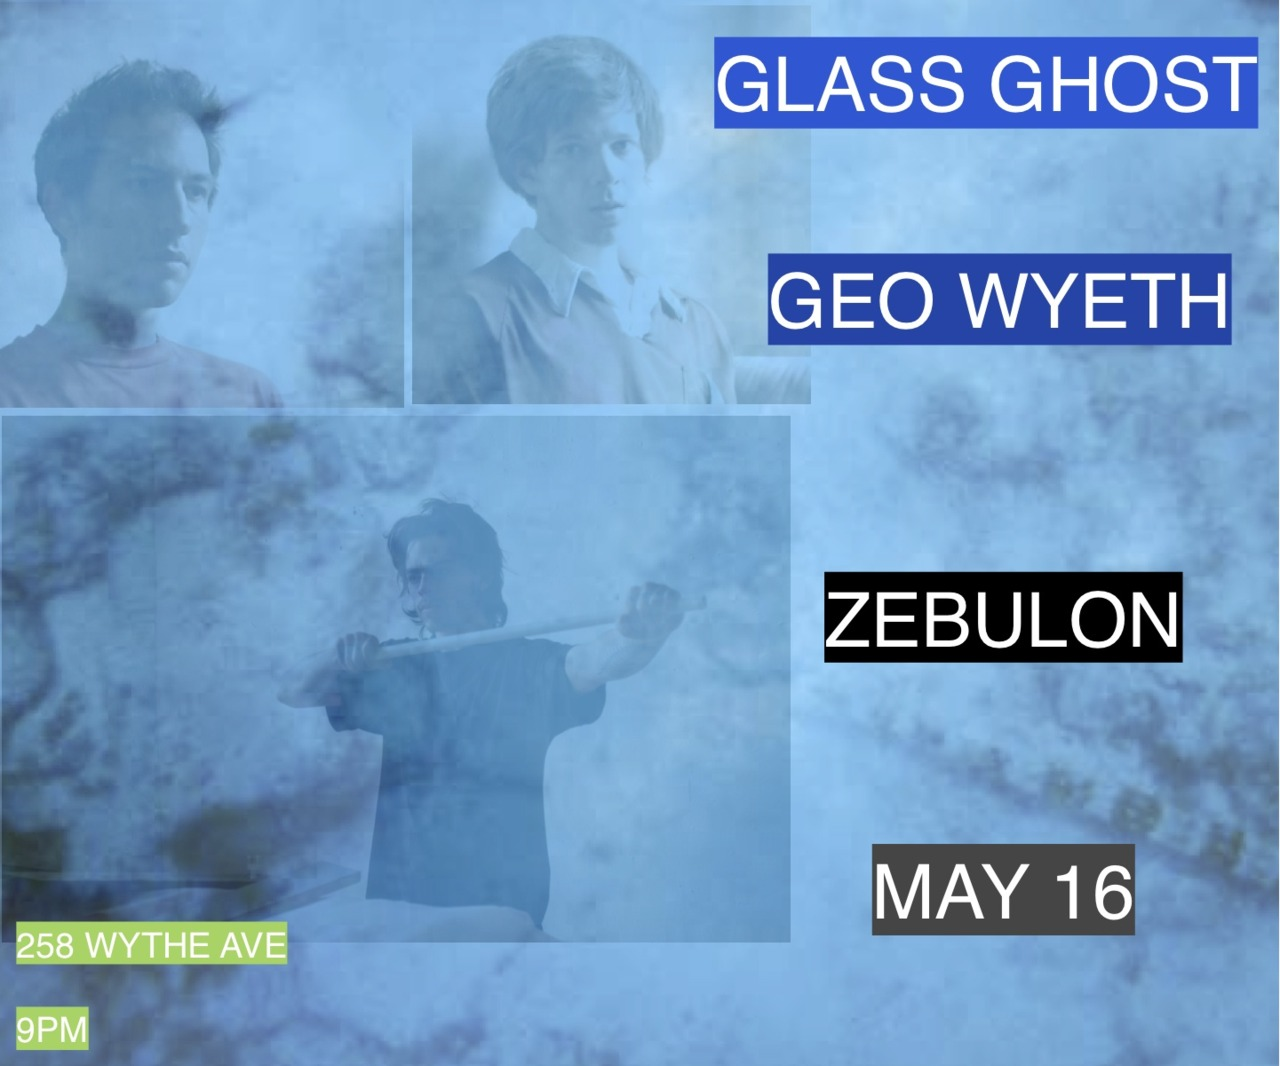 GEO WYETH GLASS GHOST performing at Zebulon on May 16 258 Wythe Avenue Brooklyn 9pm!